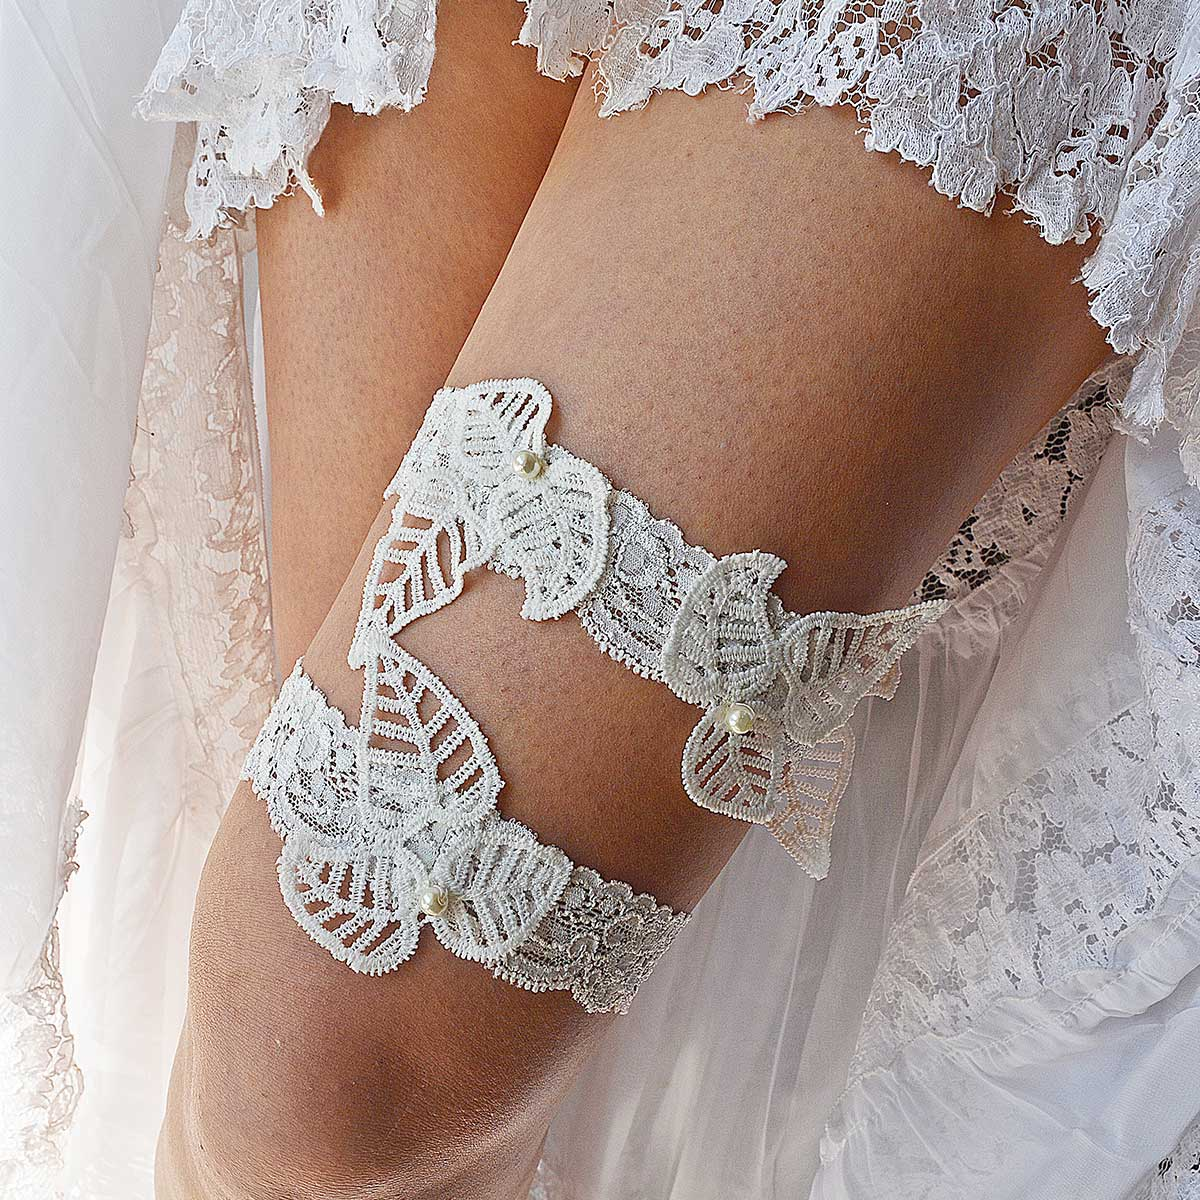 Ivory Bridal Garter With Leaf Applique & Pearls Handmade - Wedding Garter - SuzannaM Designs